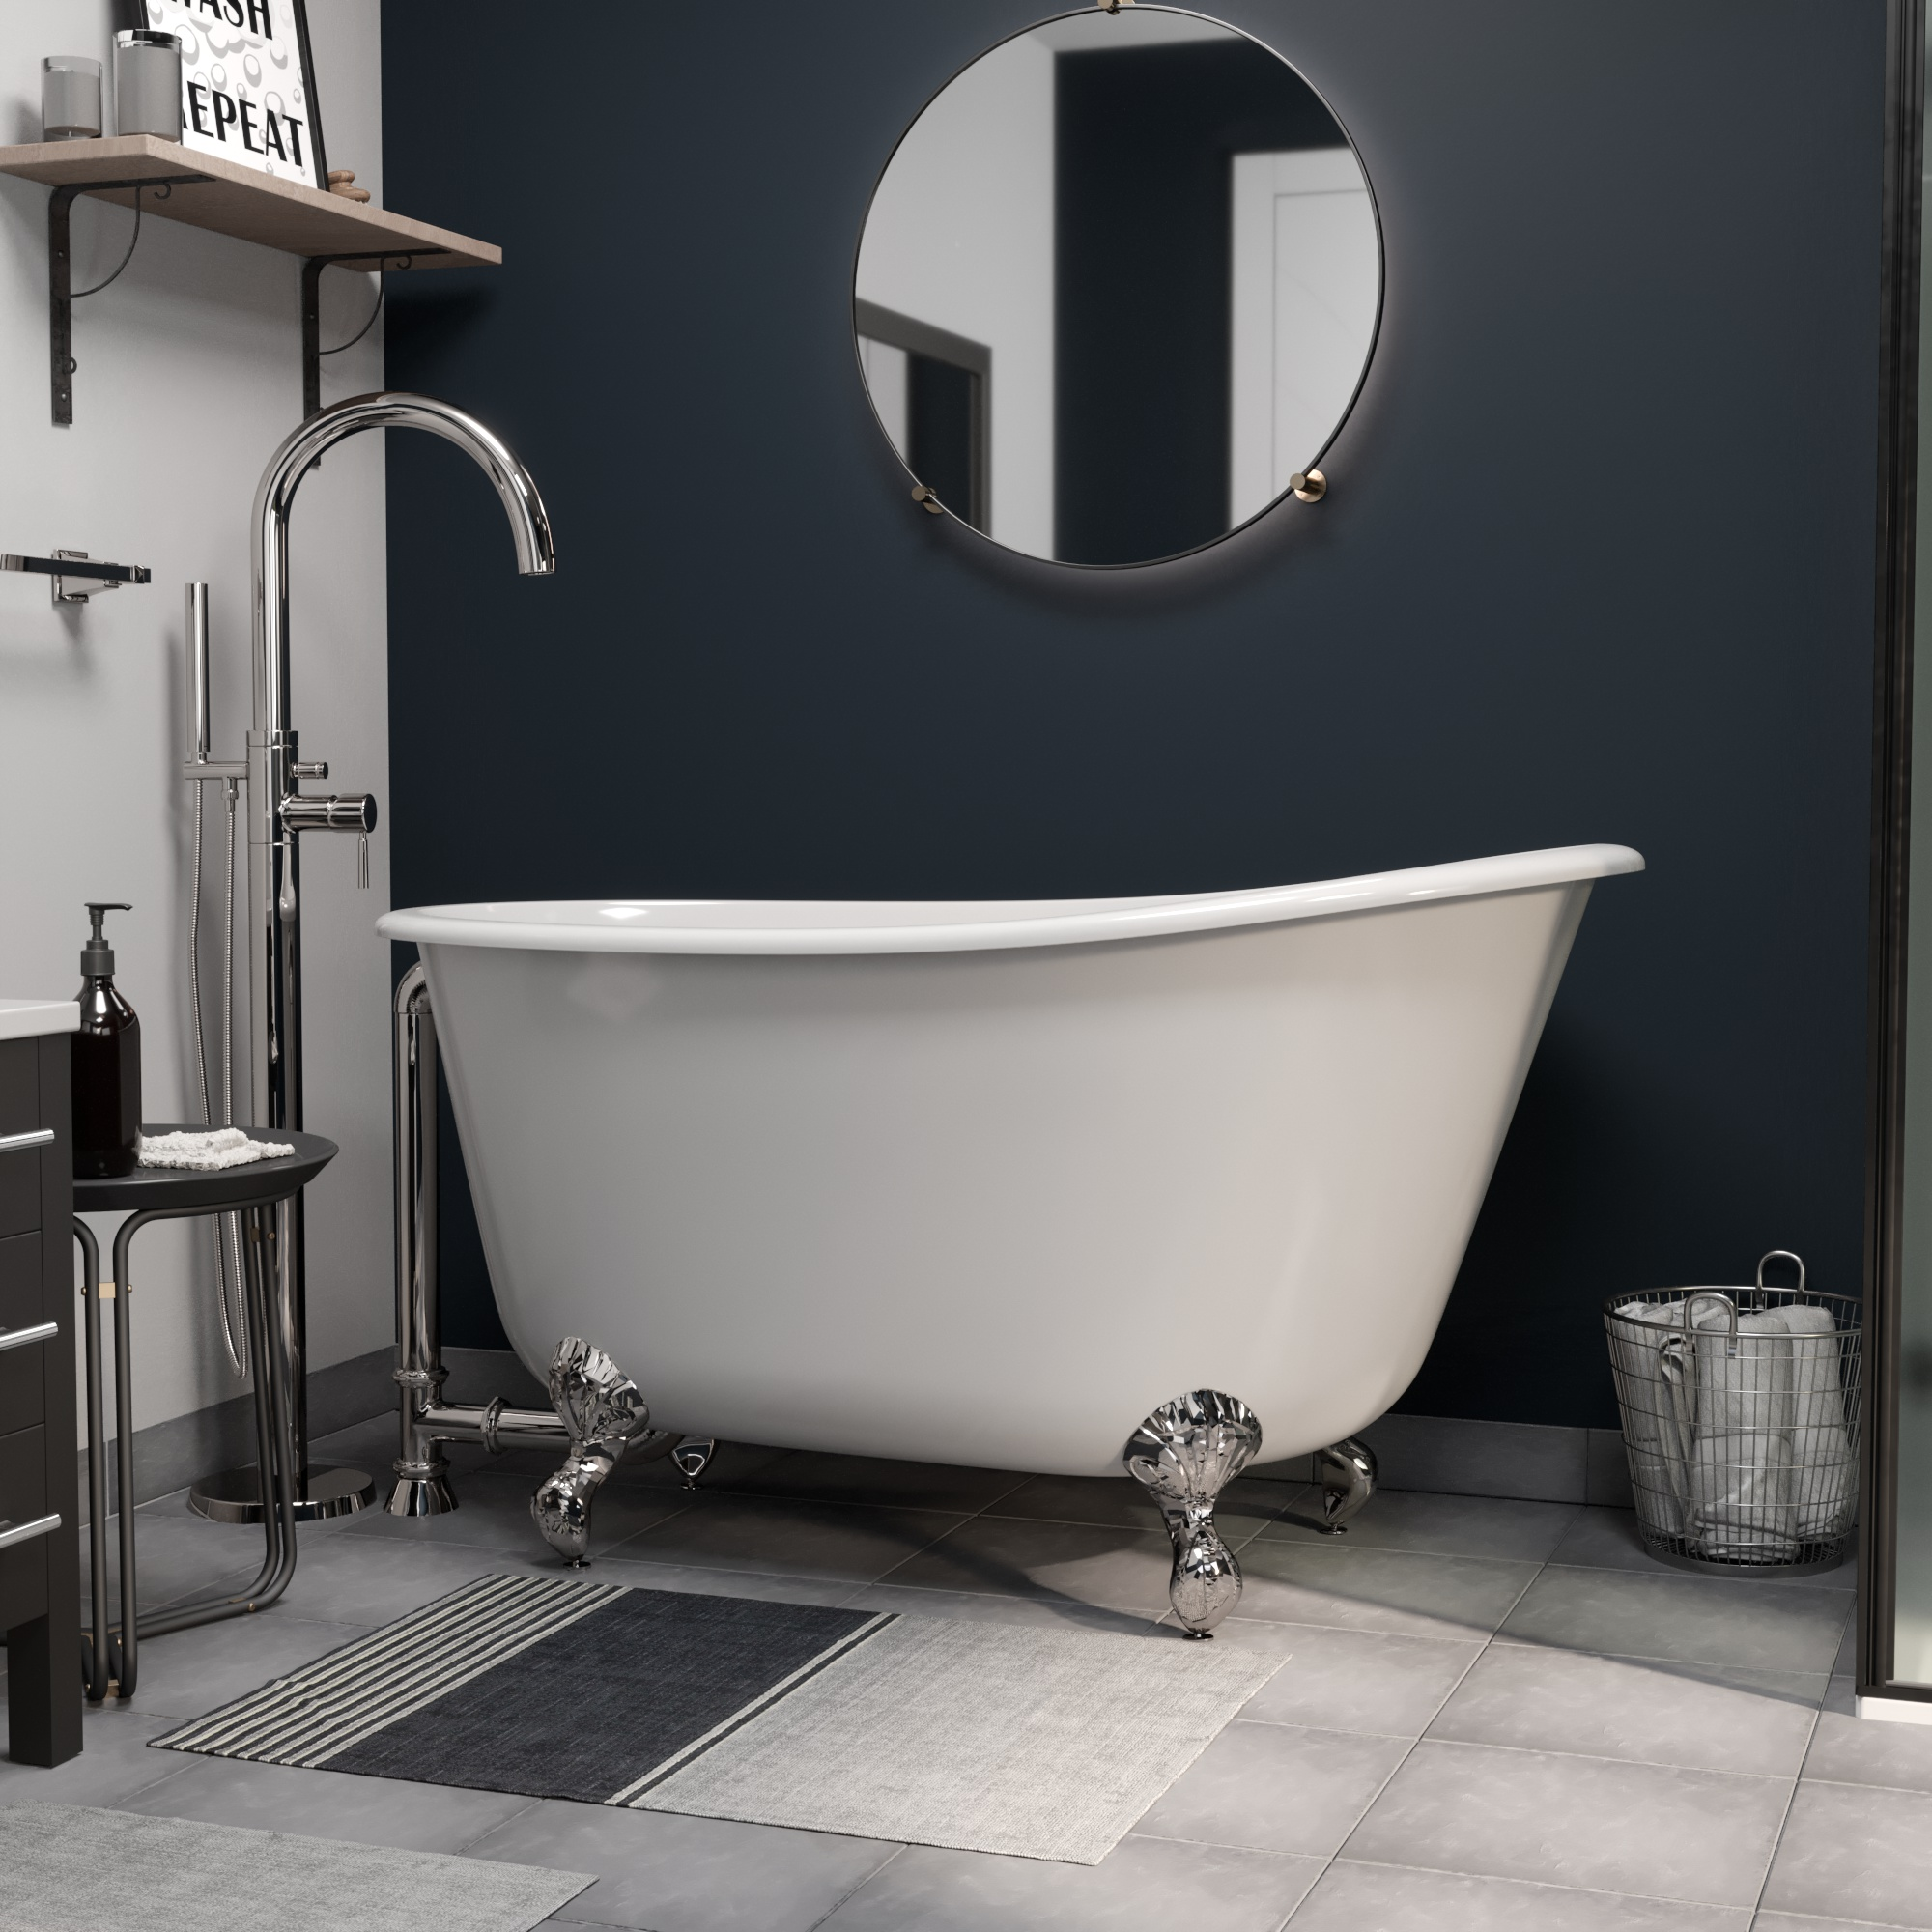 """Cast Iron Swedish Slipper Tub 54"""" X 30"""" with no Faucet Drillings and Complete Polished Chrome Modern Freestanding Tub Filler with Hand Held Shower Assembly Plumbing Package"""